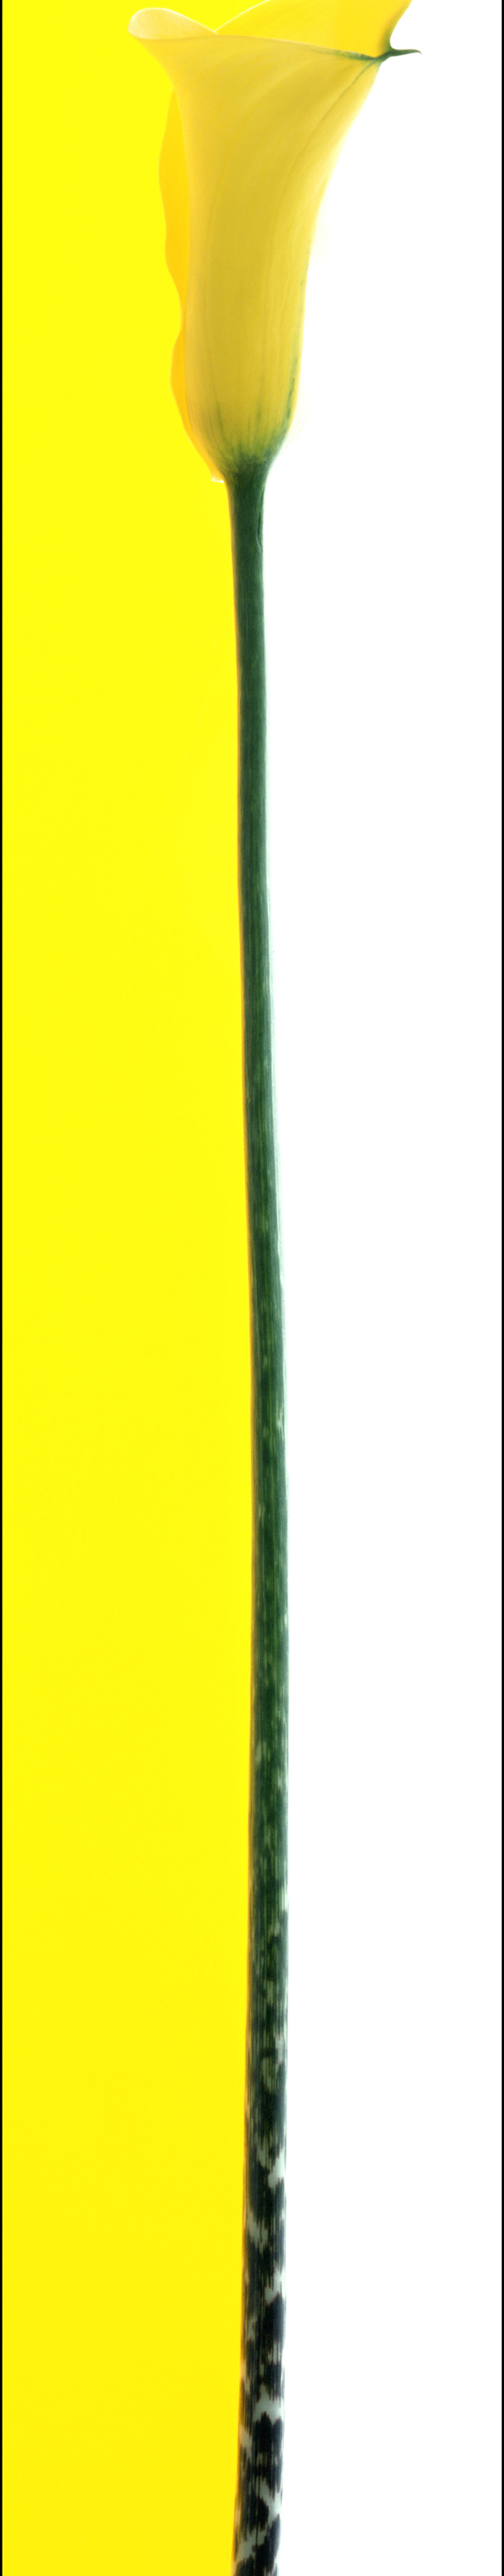 singles bar yellow.jpg